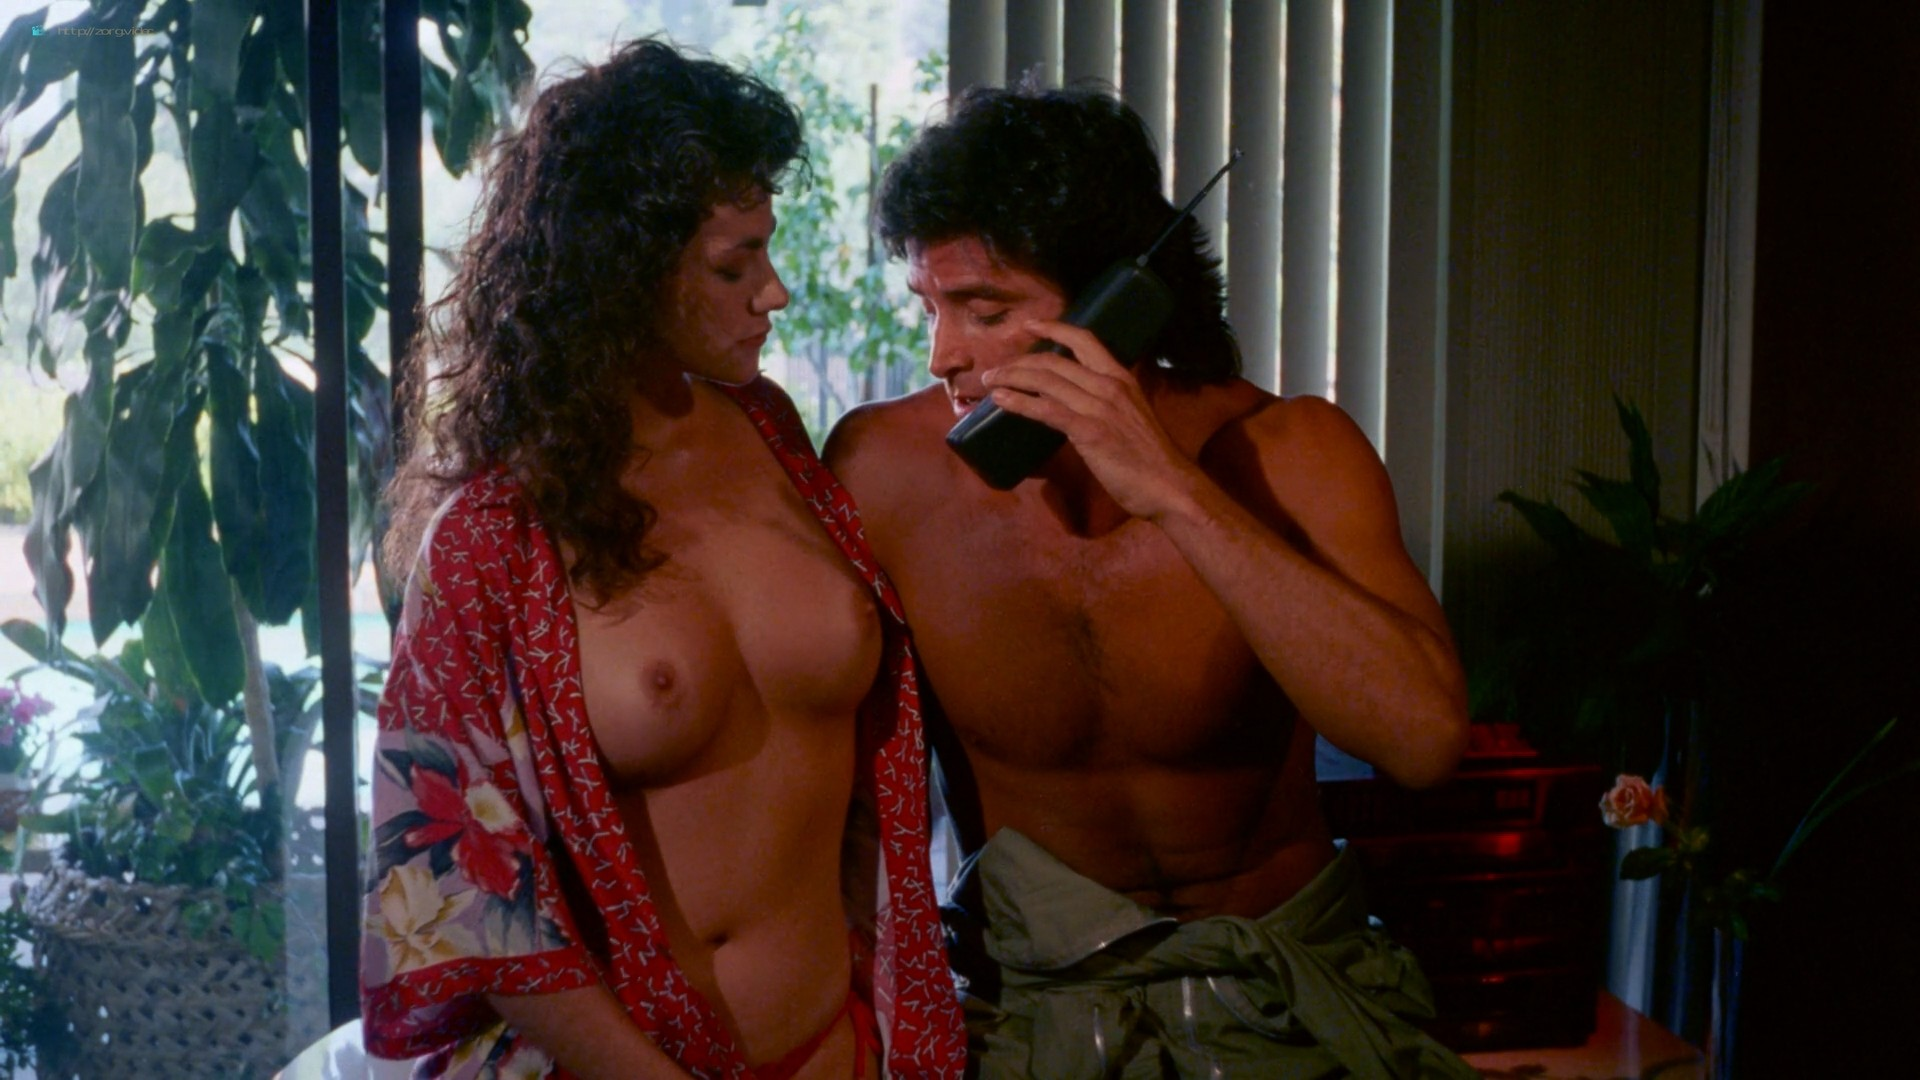 Hope Marie Carlton nude bush Teri Weigel sex in the car Maxine Wasa and other's nude - Savage Beach (1989) HD 1080p BluRay (43)